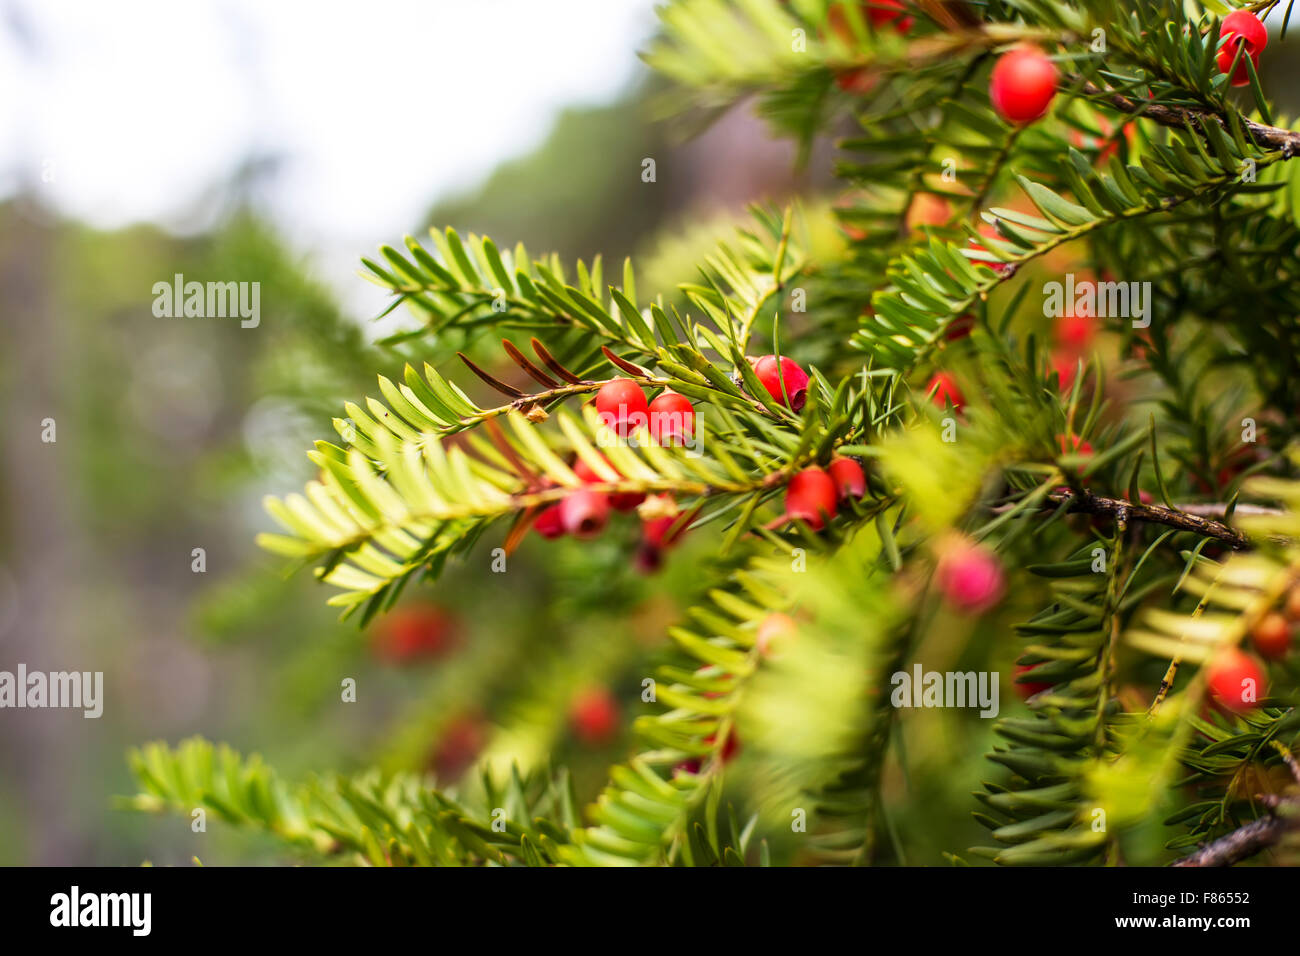 Branches of conifers - Stock Image